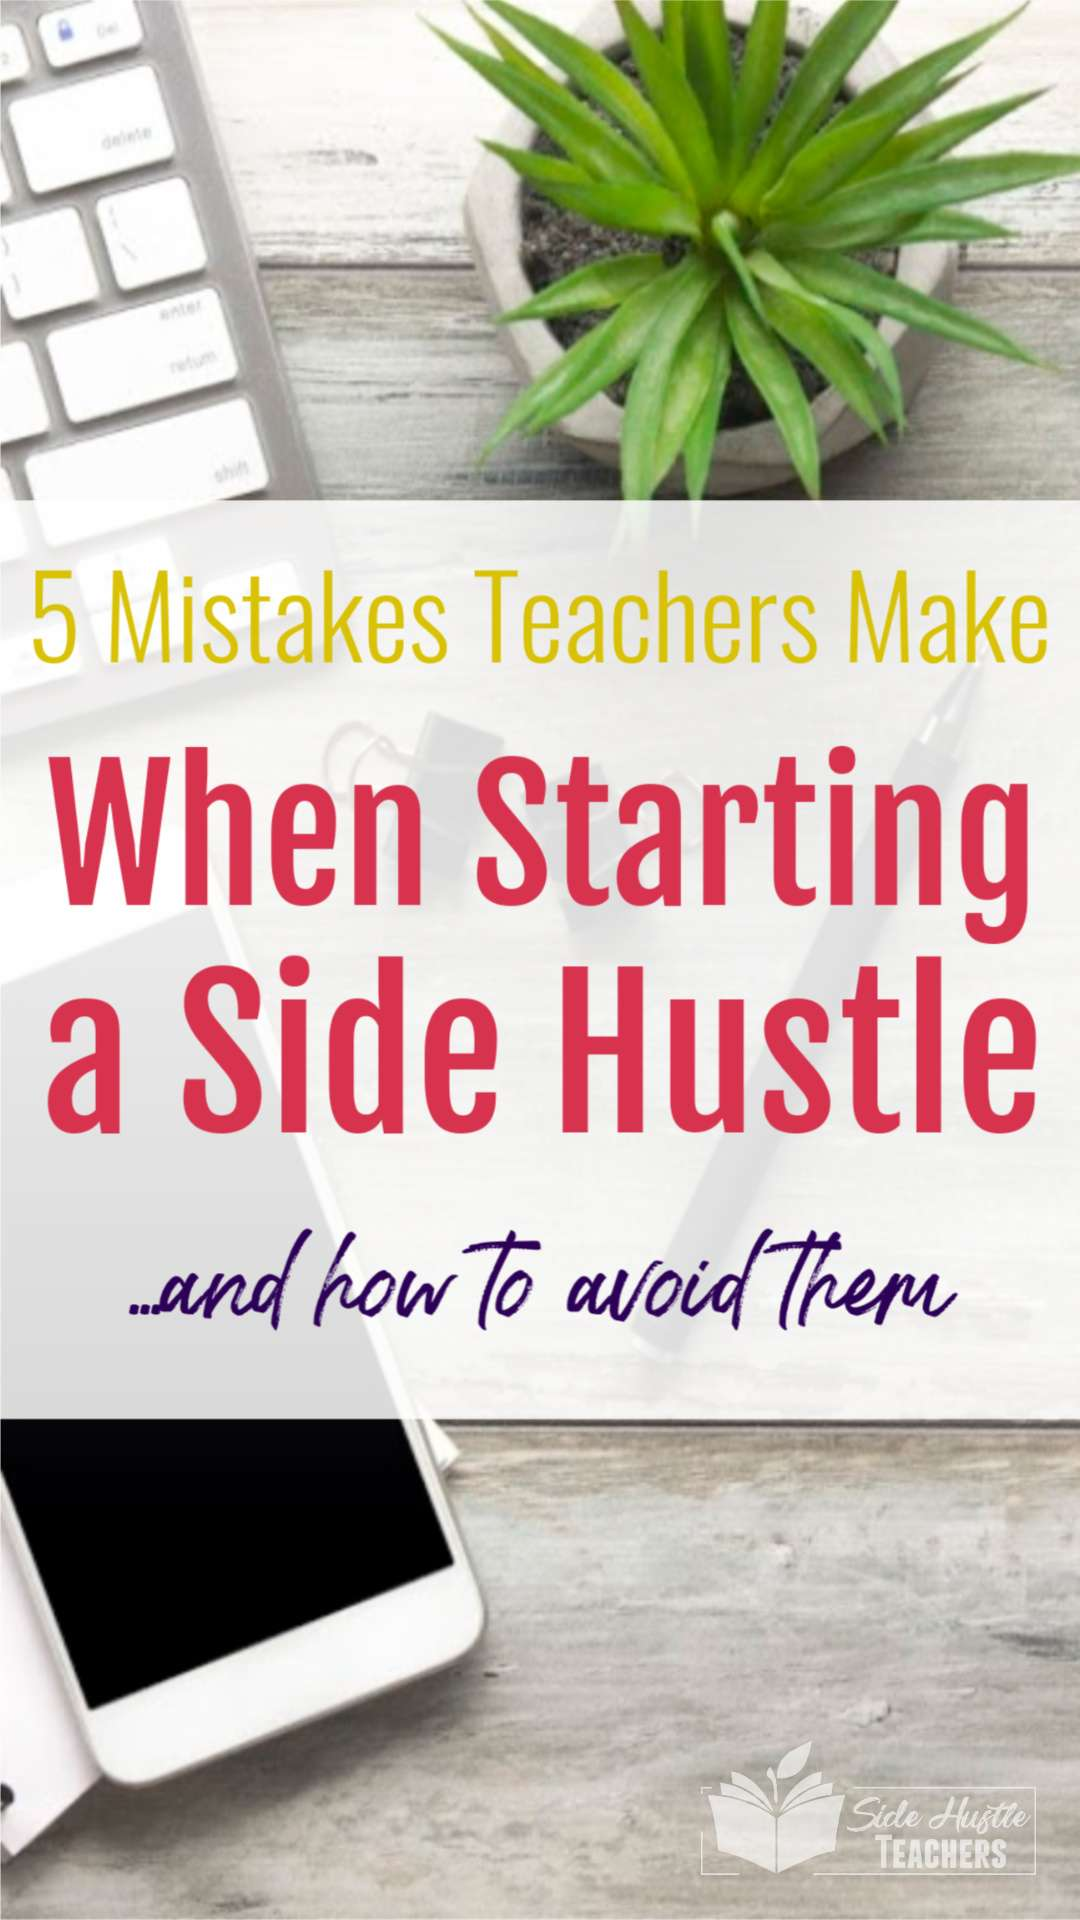 5 Mistakes Teachers Make When Starting a Side Hustle and How to Avoid Them